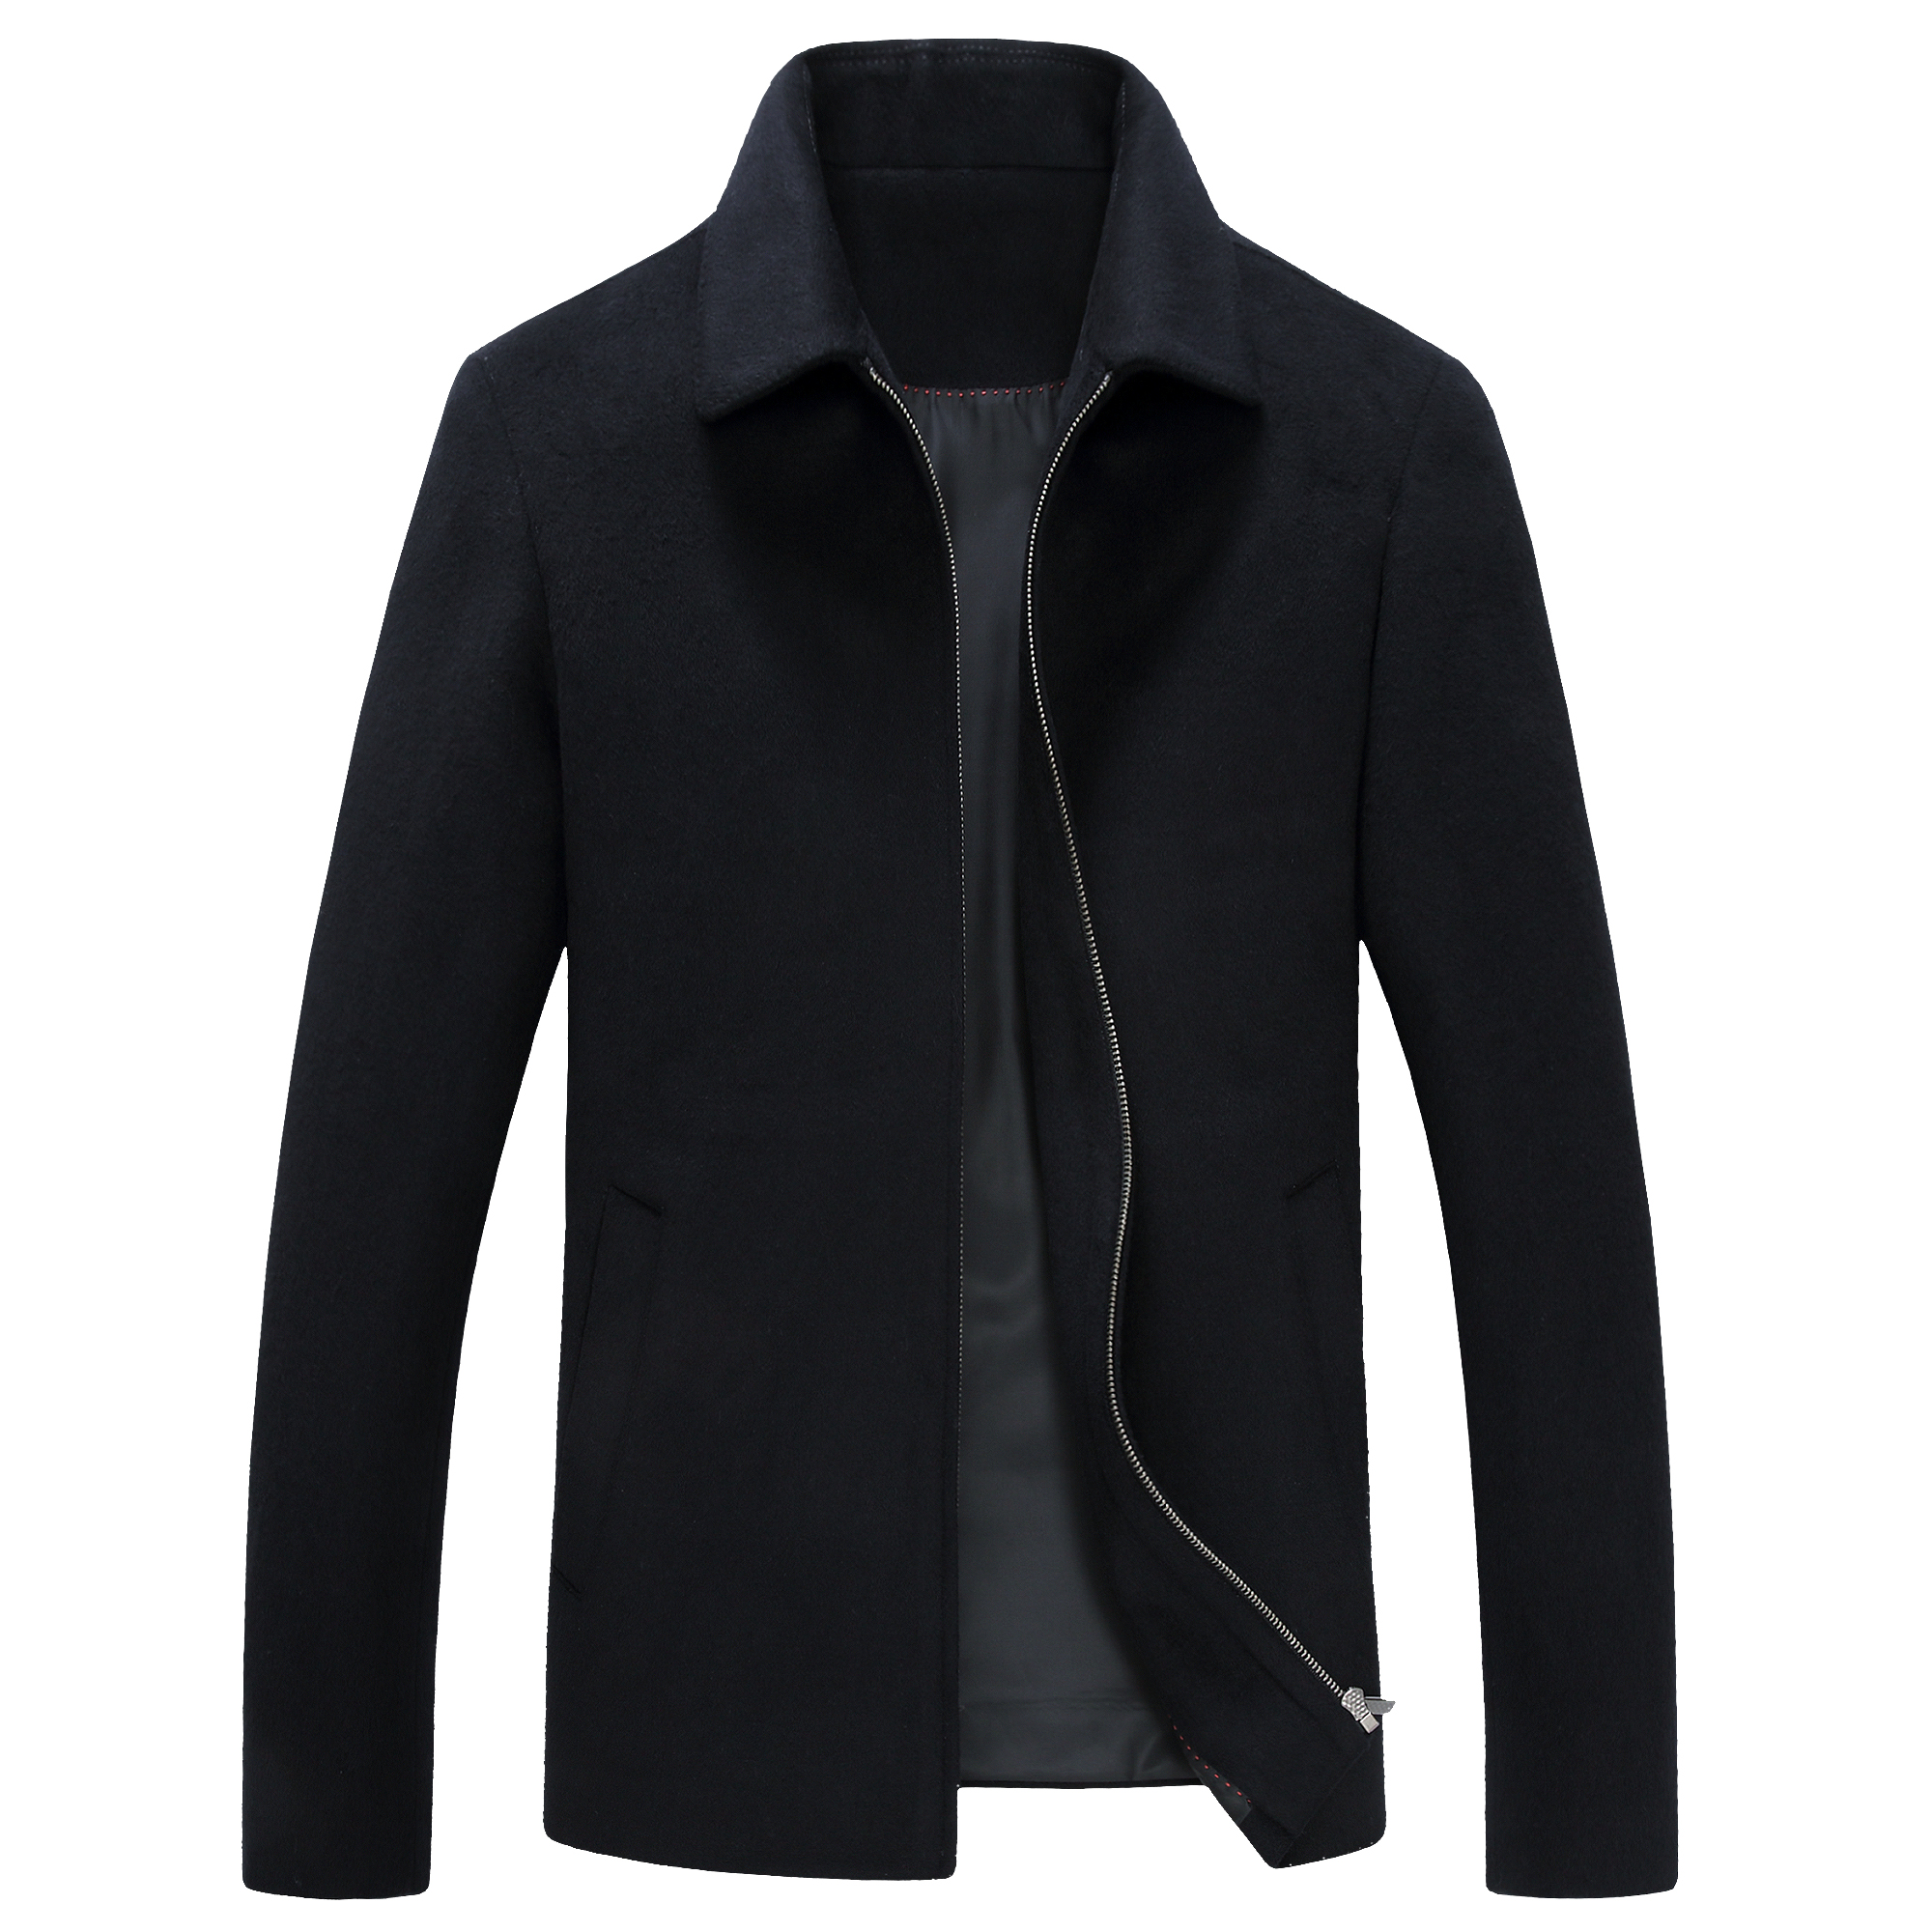 Find great deals on eBay for mens casual black jacket. Shop with confidence.